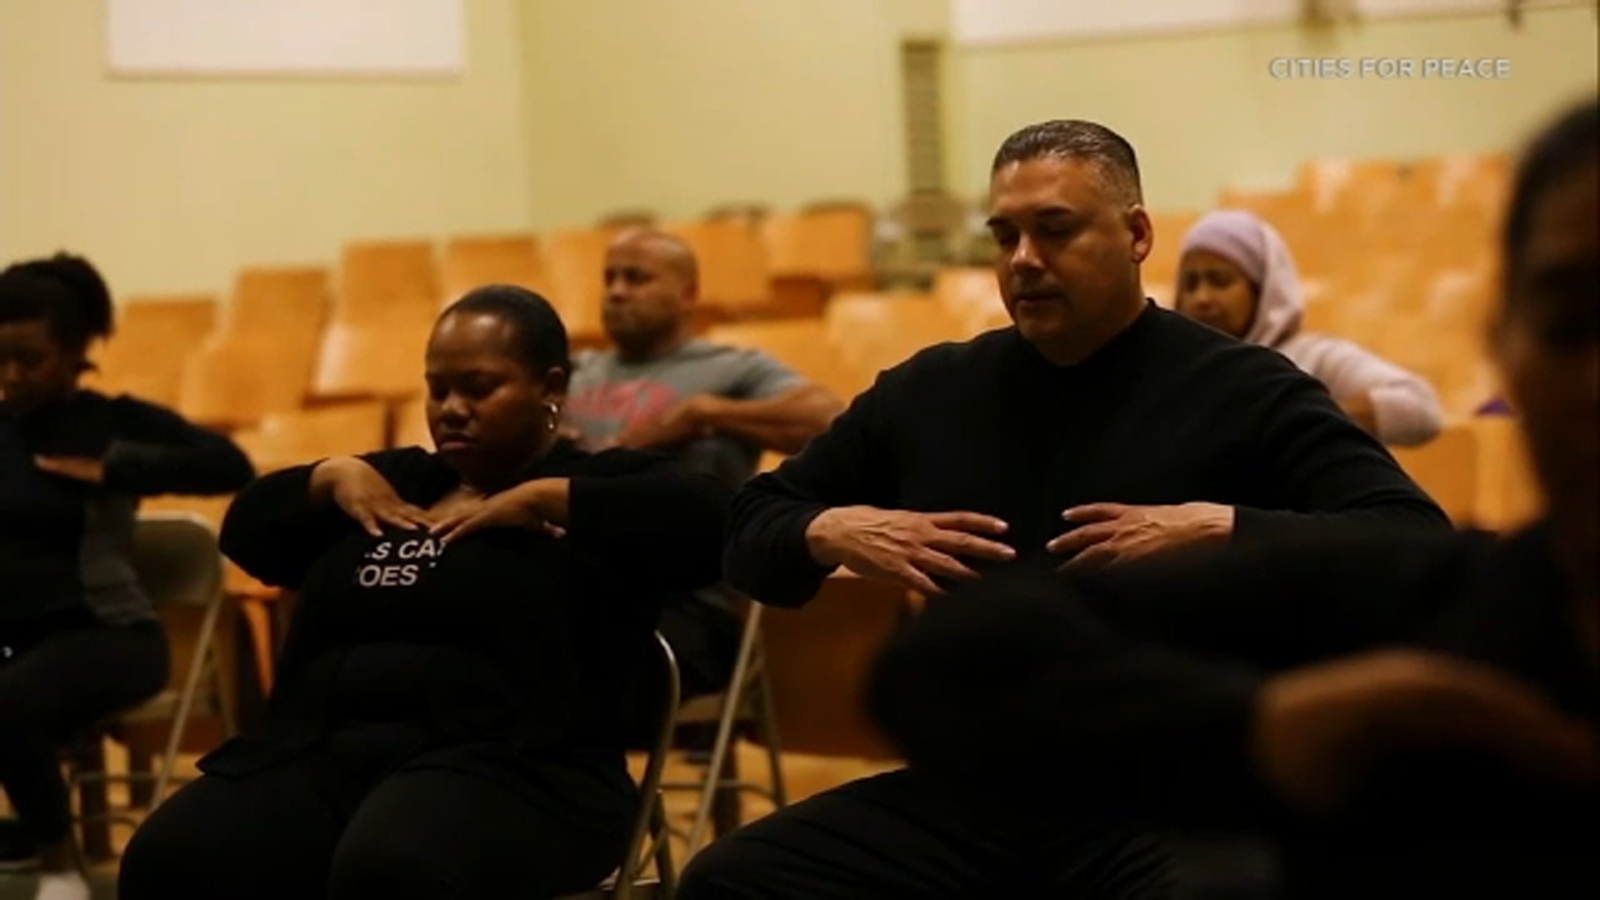 Cities for Peace: Police, former gang members work to reduce violence in South L.A.